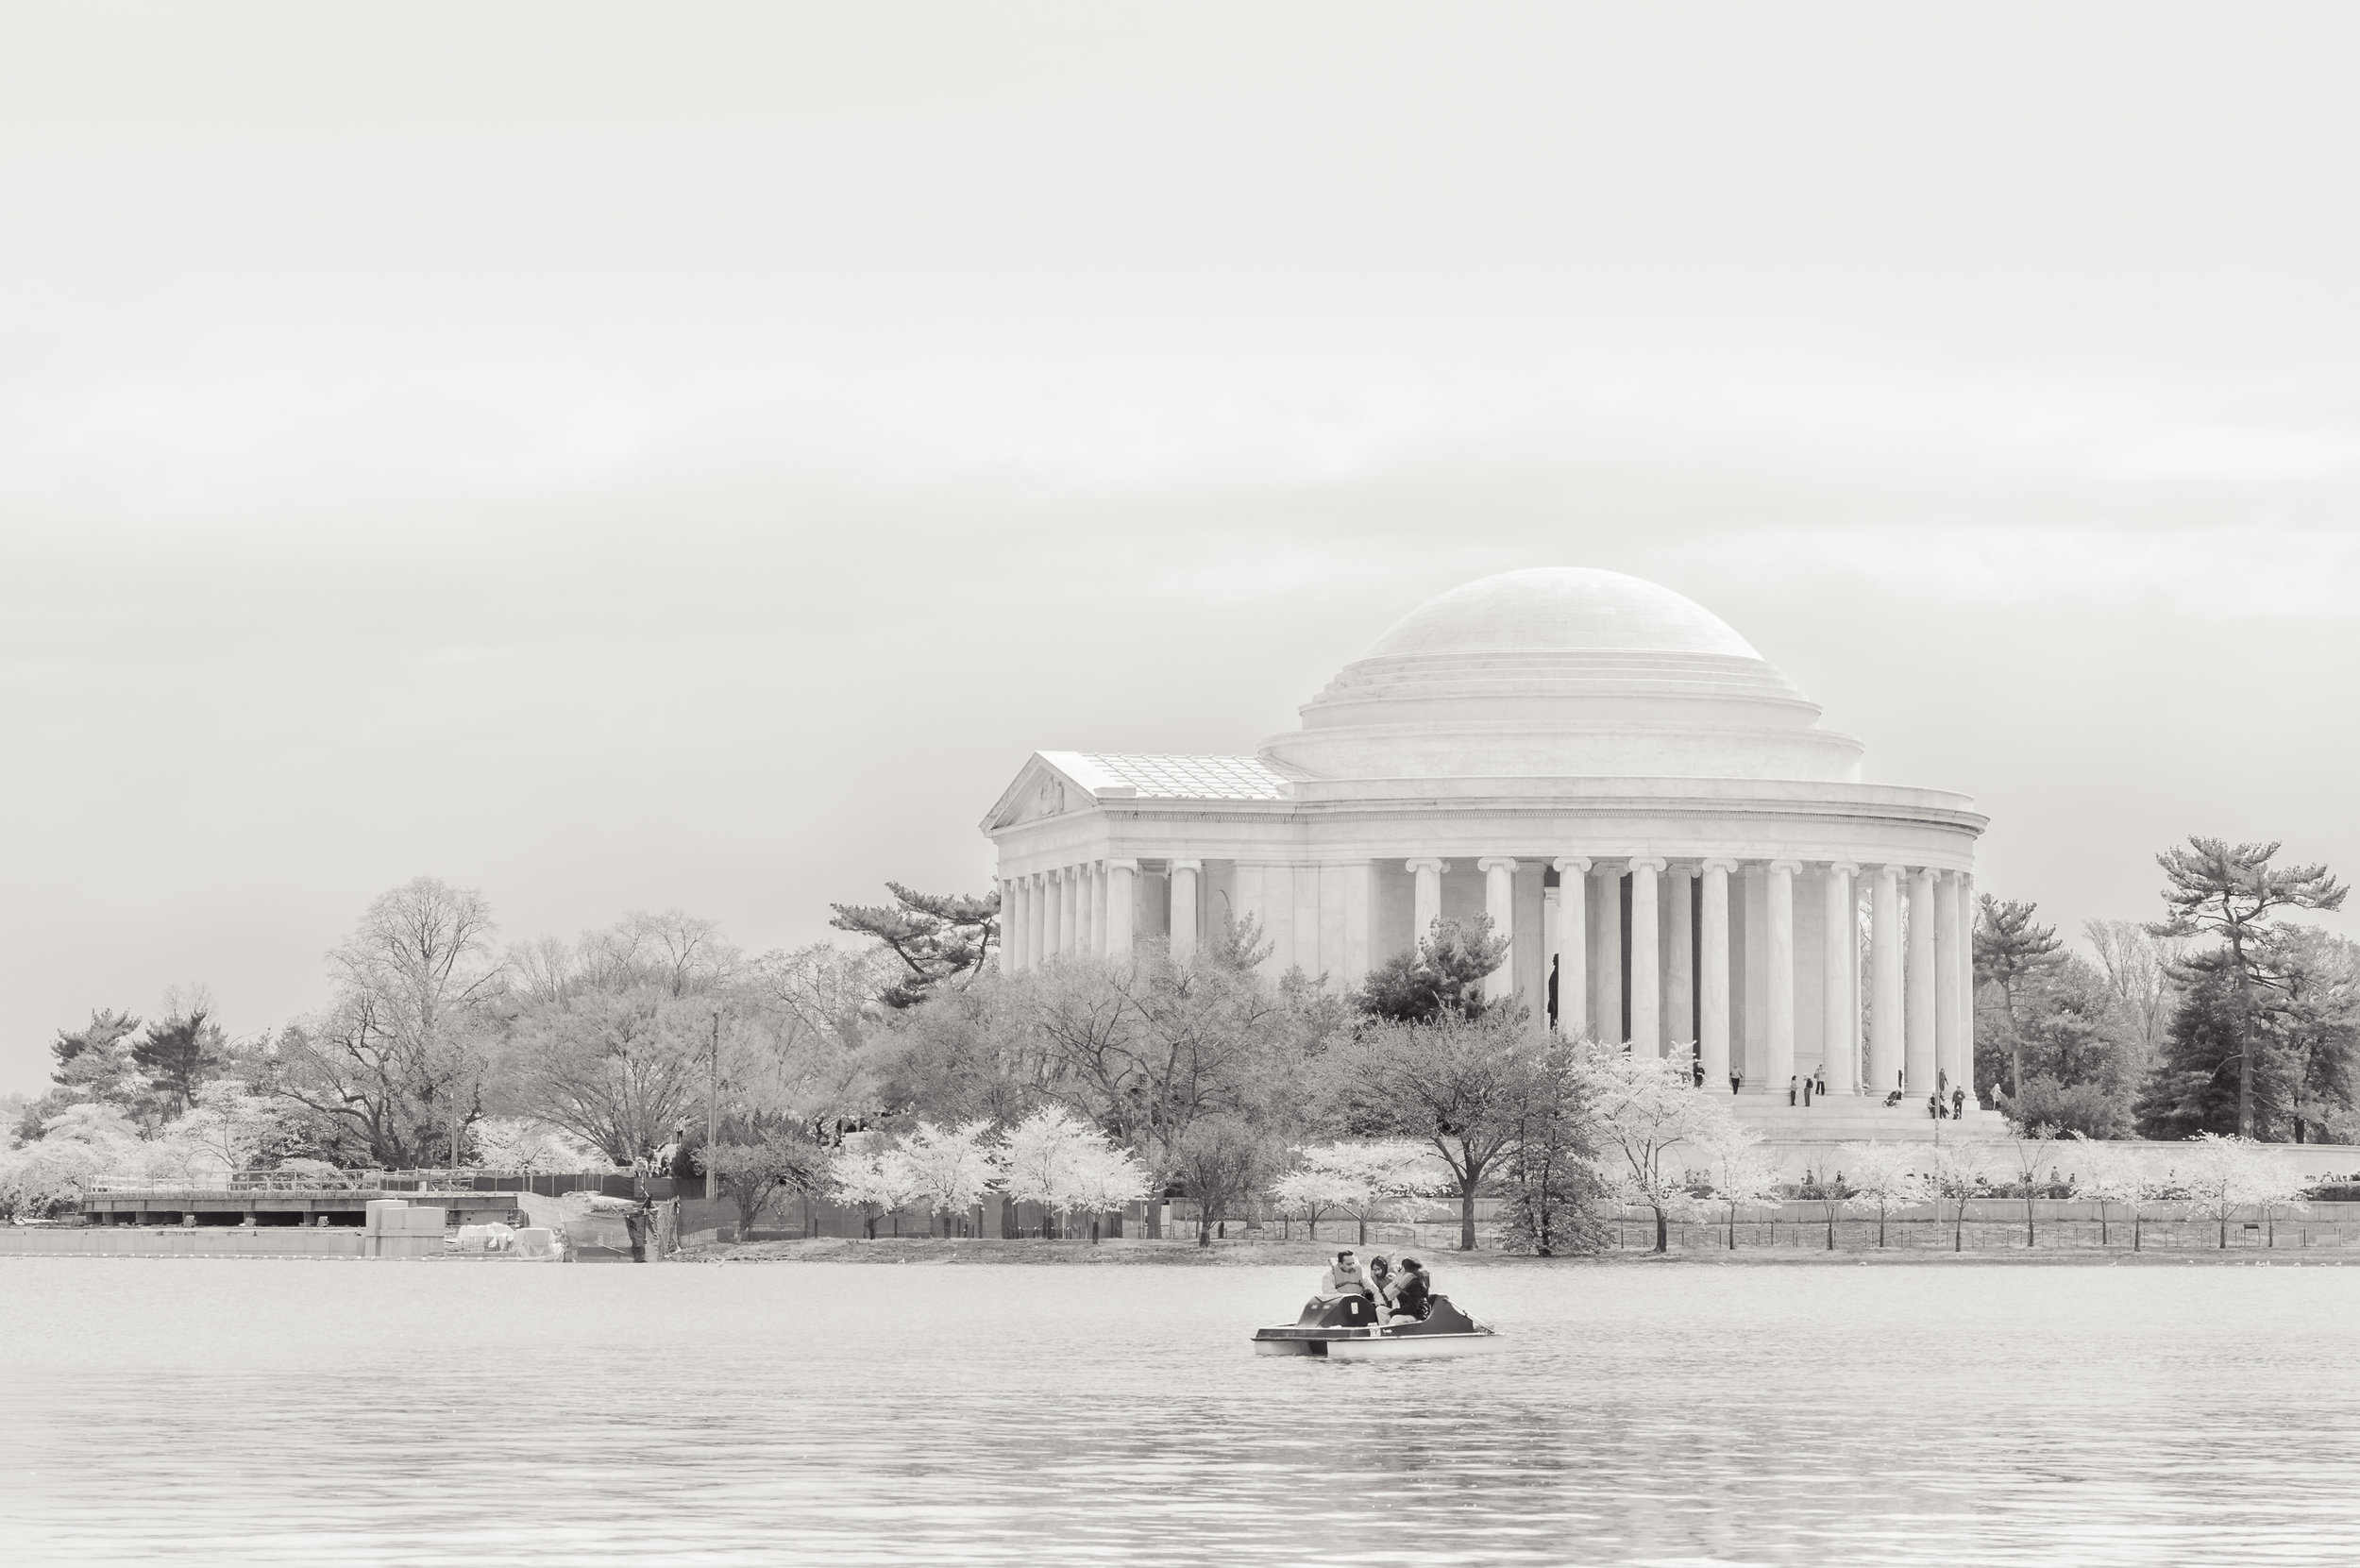 Pedal boating in the Tidal Basin in front of the Thomas Jefferson Memorial, Washington, D.C.